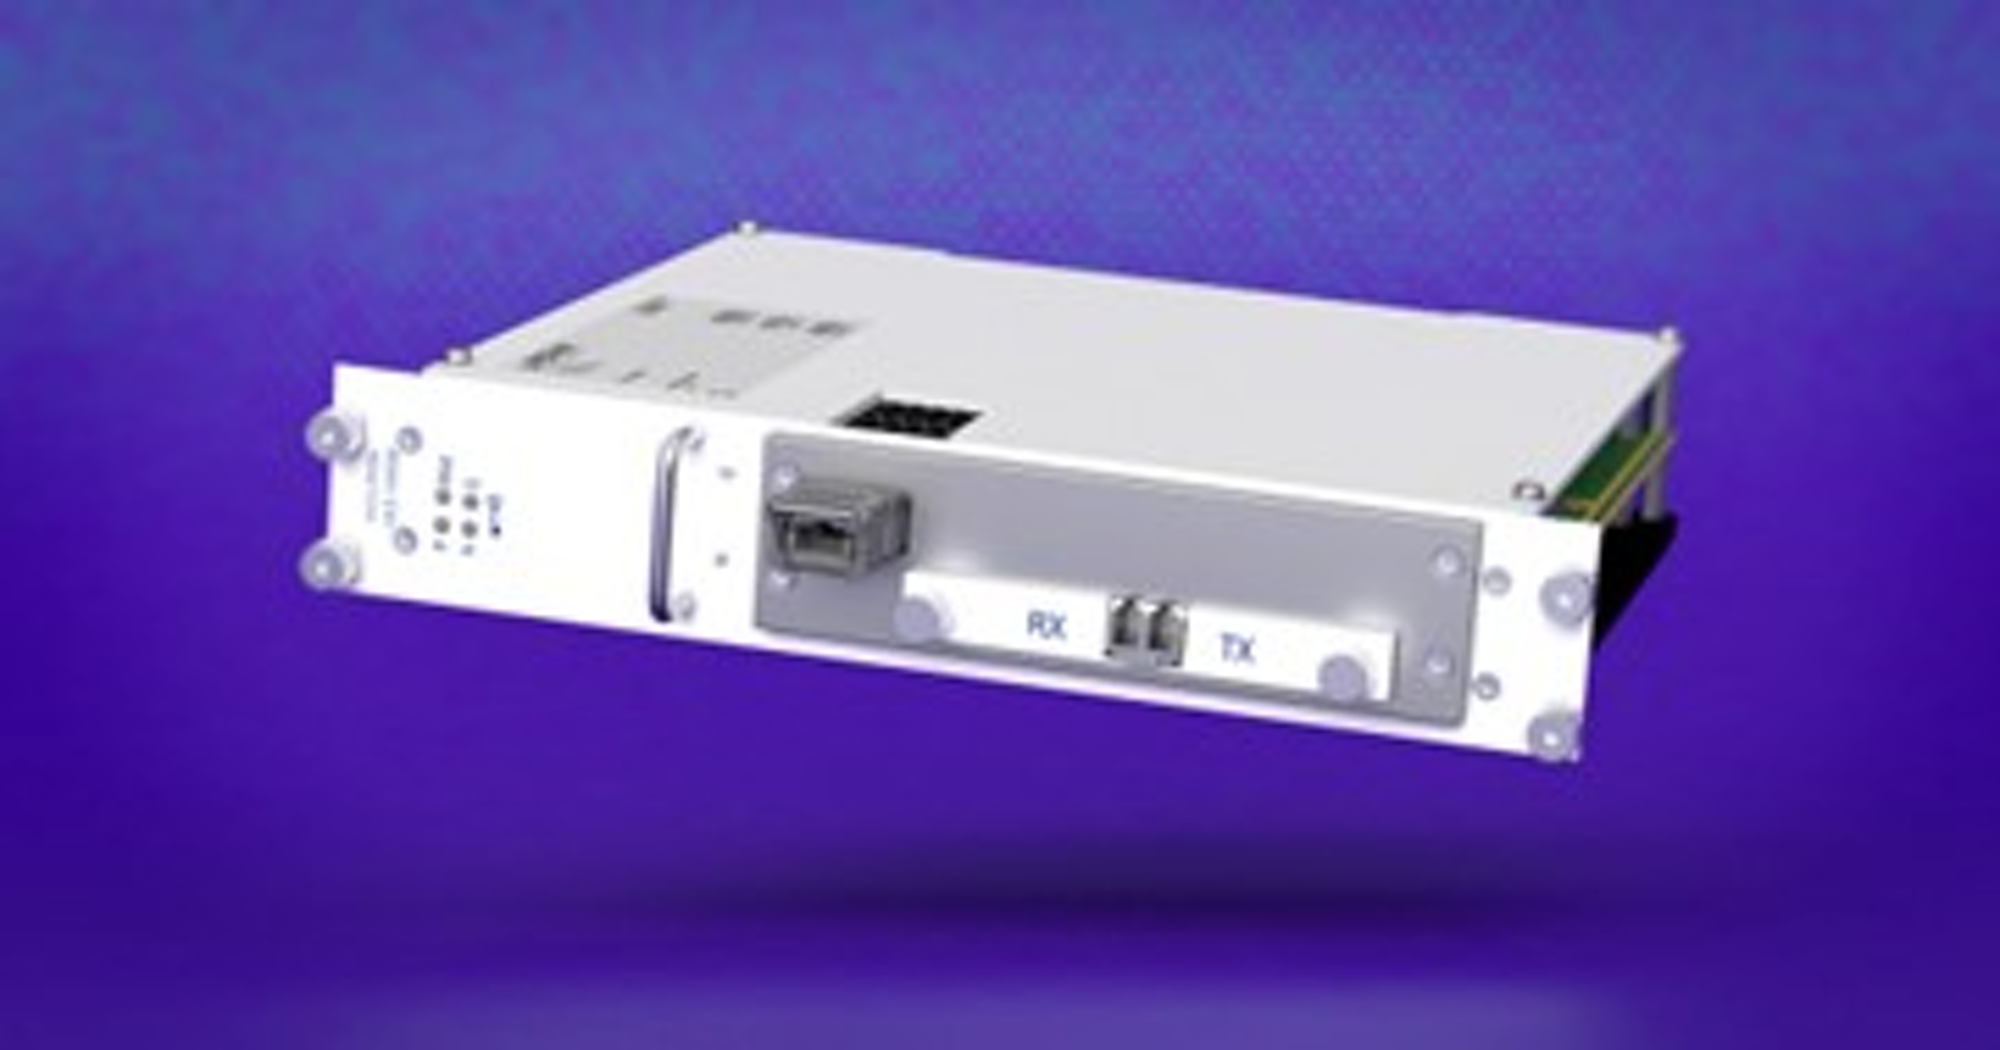 ADVA FSP 3000 ConnectGuard offers post-quantum cryptography security